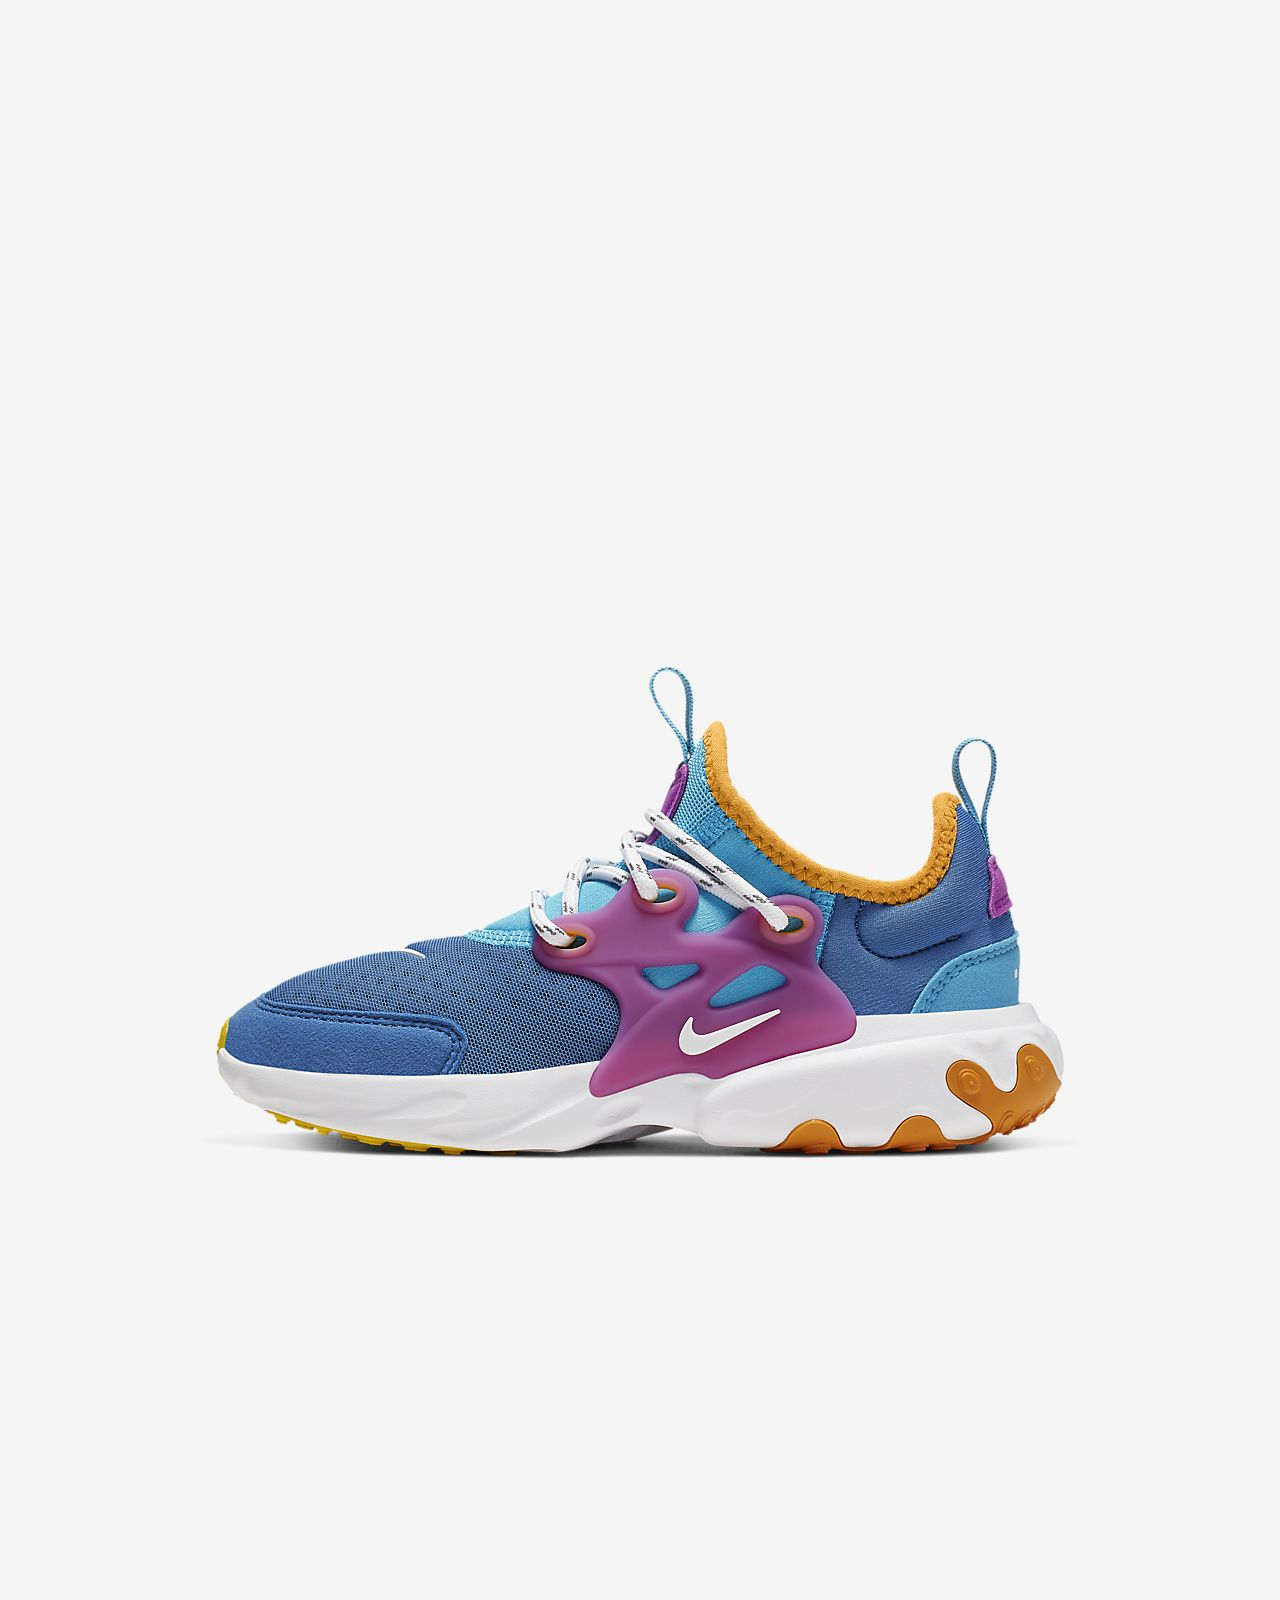 Nike Presto Little Kids' Shoe